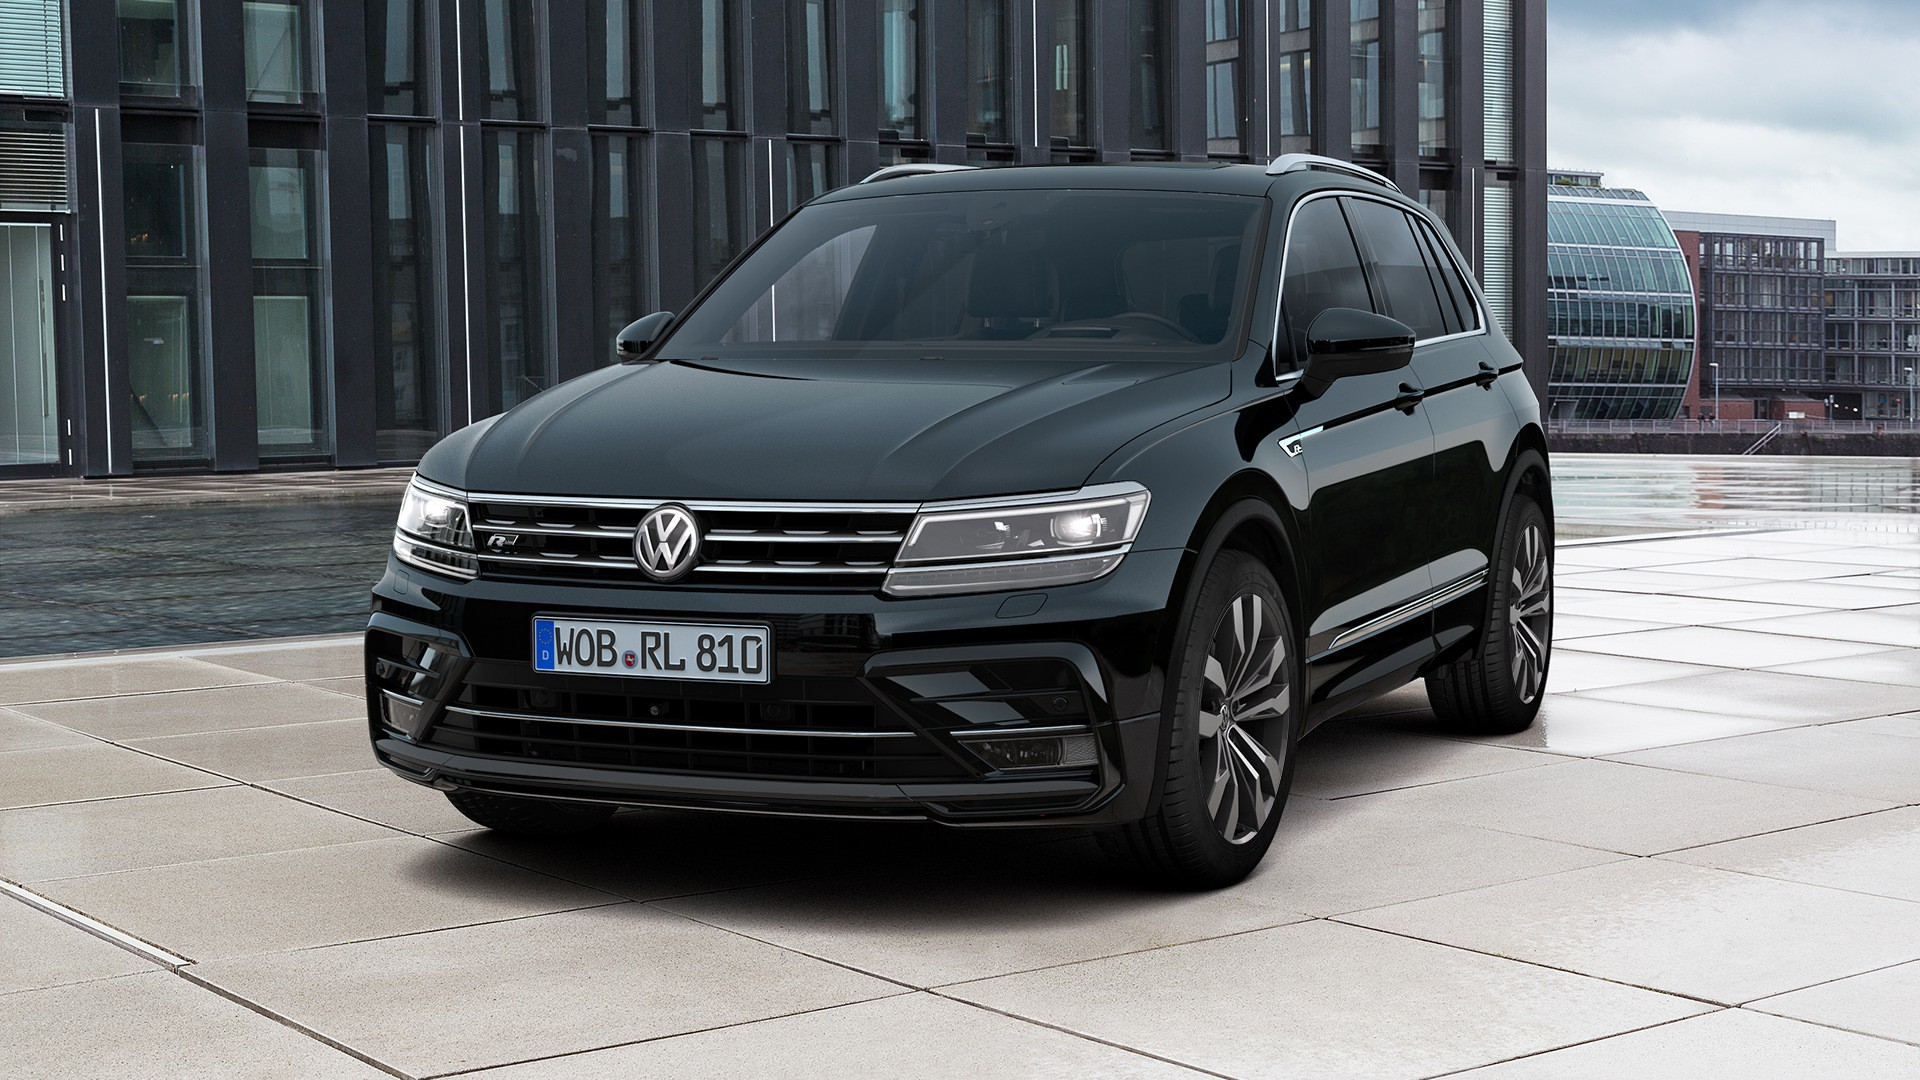 volkswagen tiguan ii 2016 topic officiel page 26 tiguan volkswagen forum marques. Black Bedroom Furniture Sets. Home Design Ideas